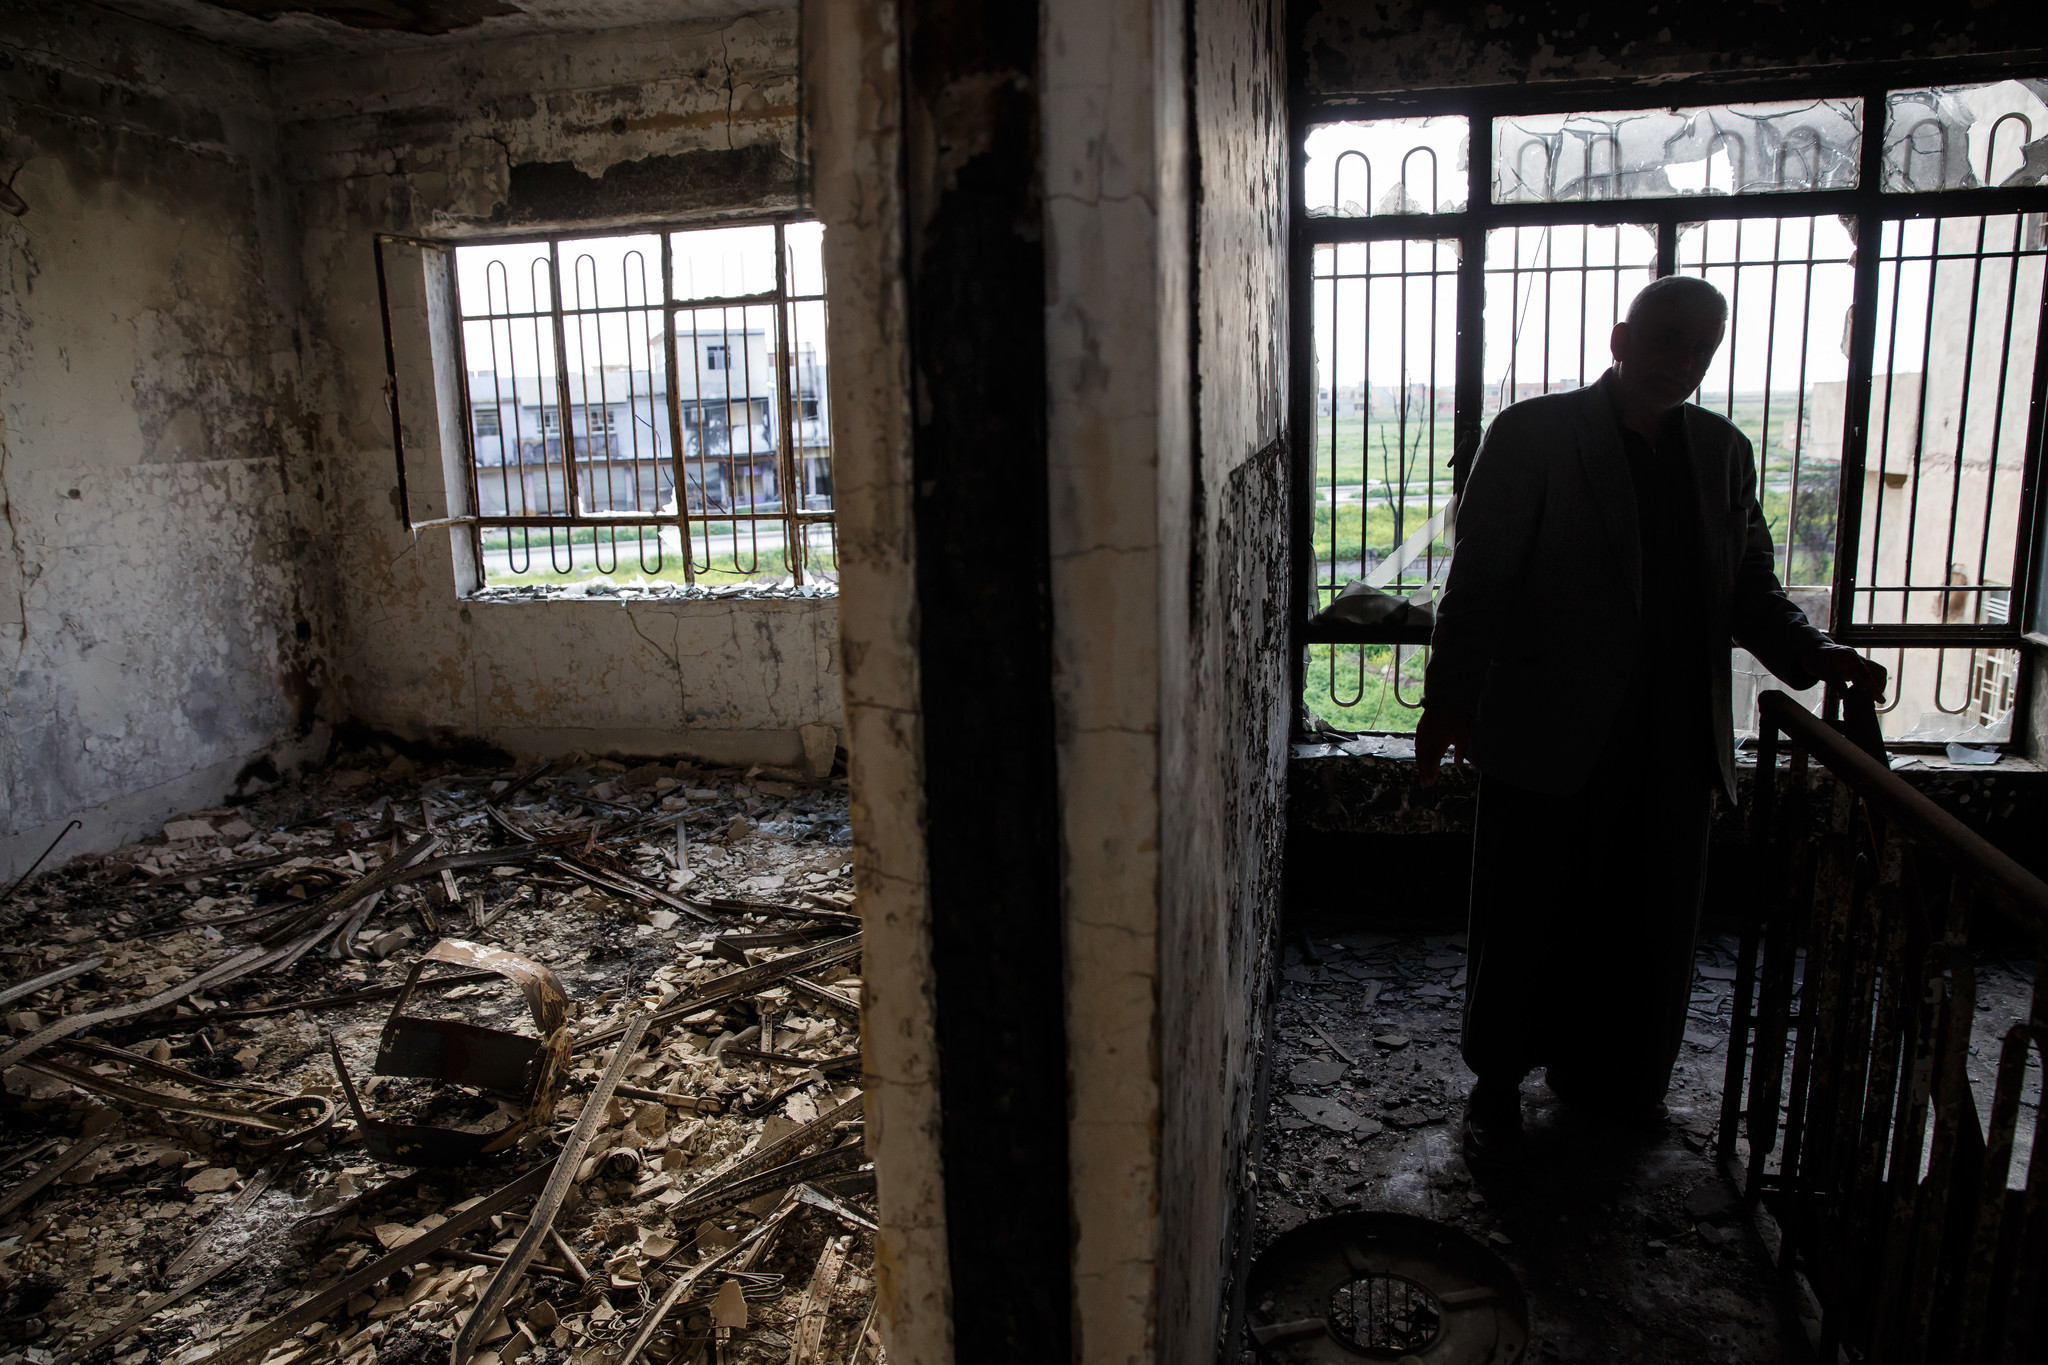 Tawfiq Abosh Jabu Sakar wanders through his home destroyed by Islamic State in Qaraqosh, Iraq.